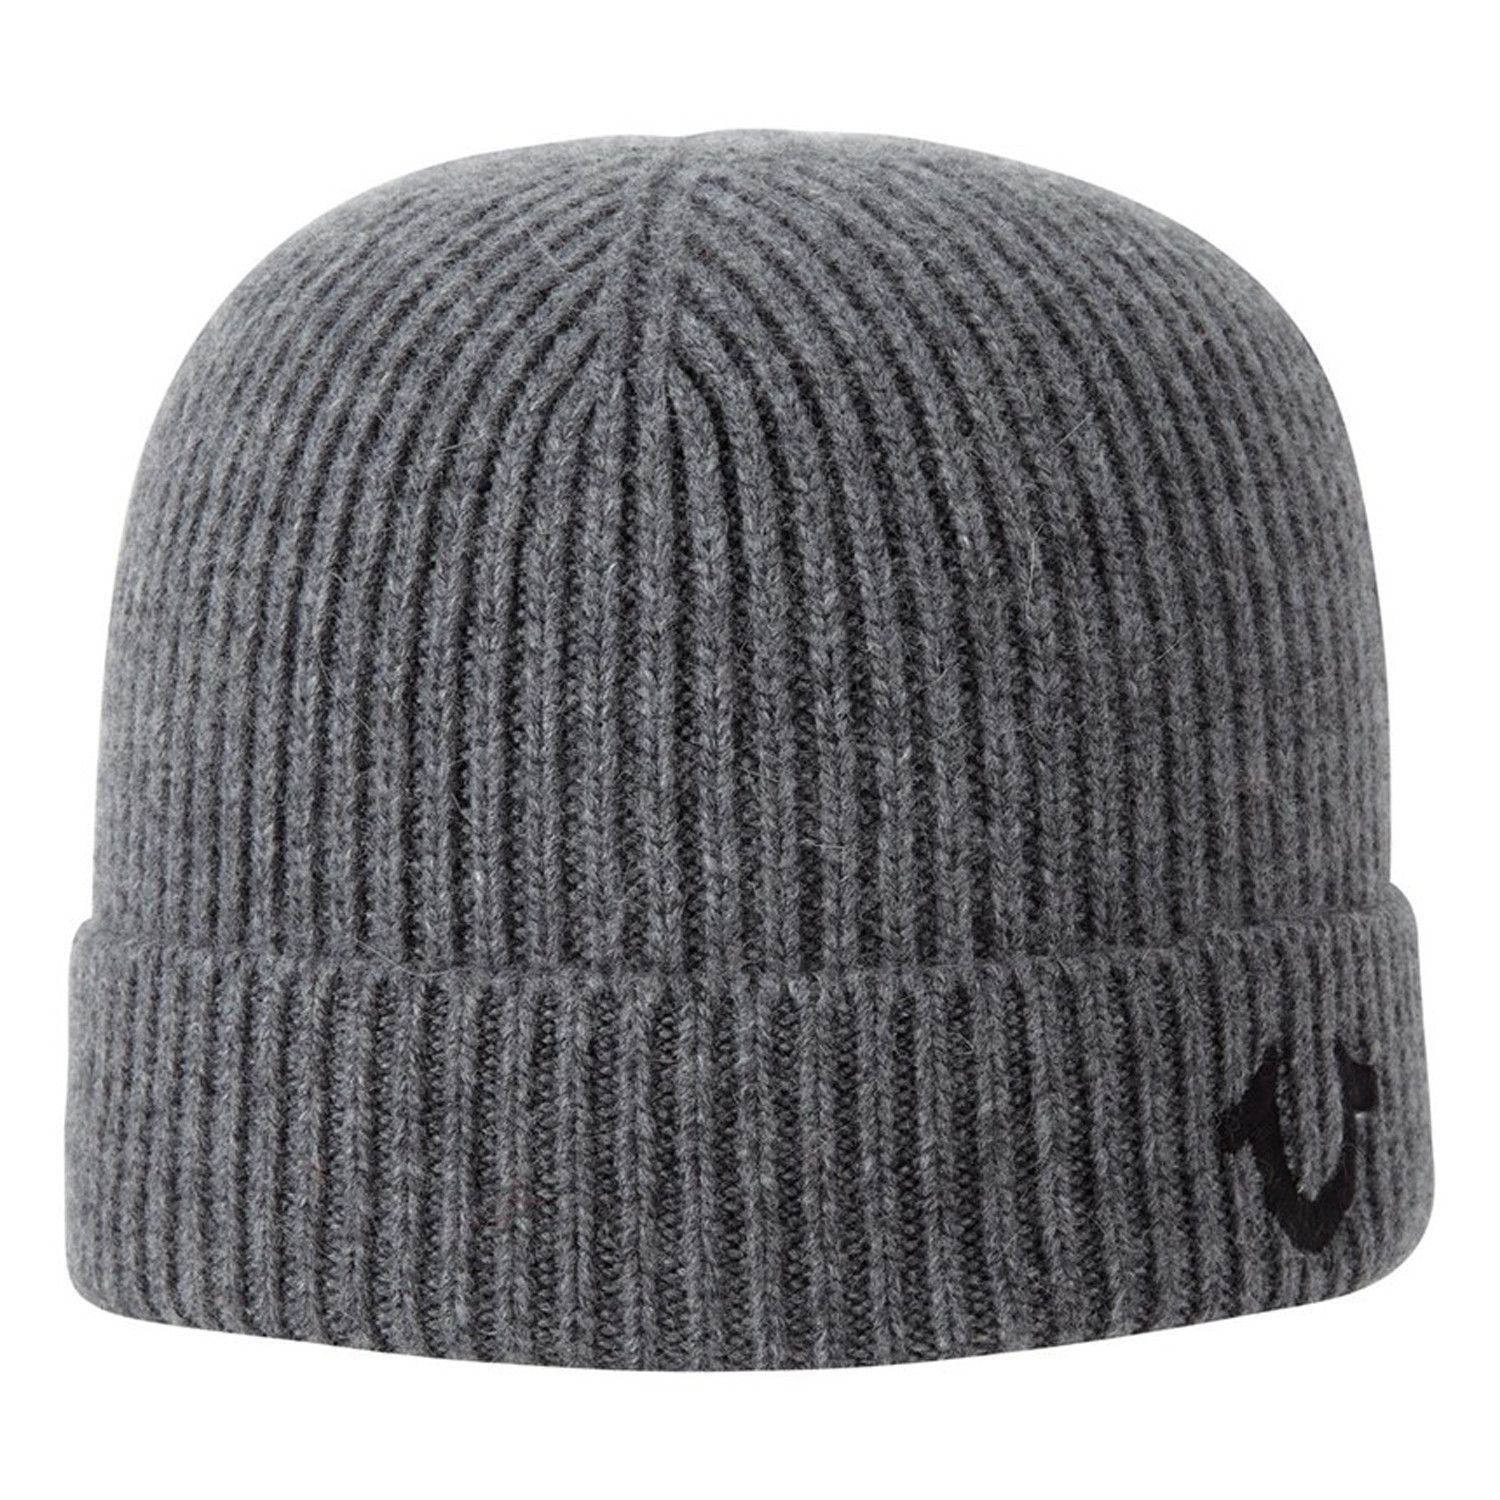 6362bab51e089 TRUE RELIGION Ribbed Knit Watchcap